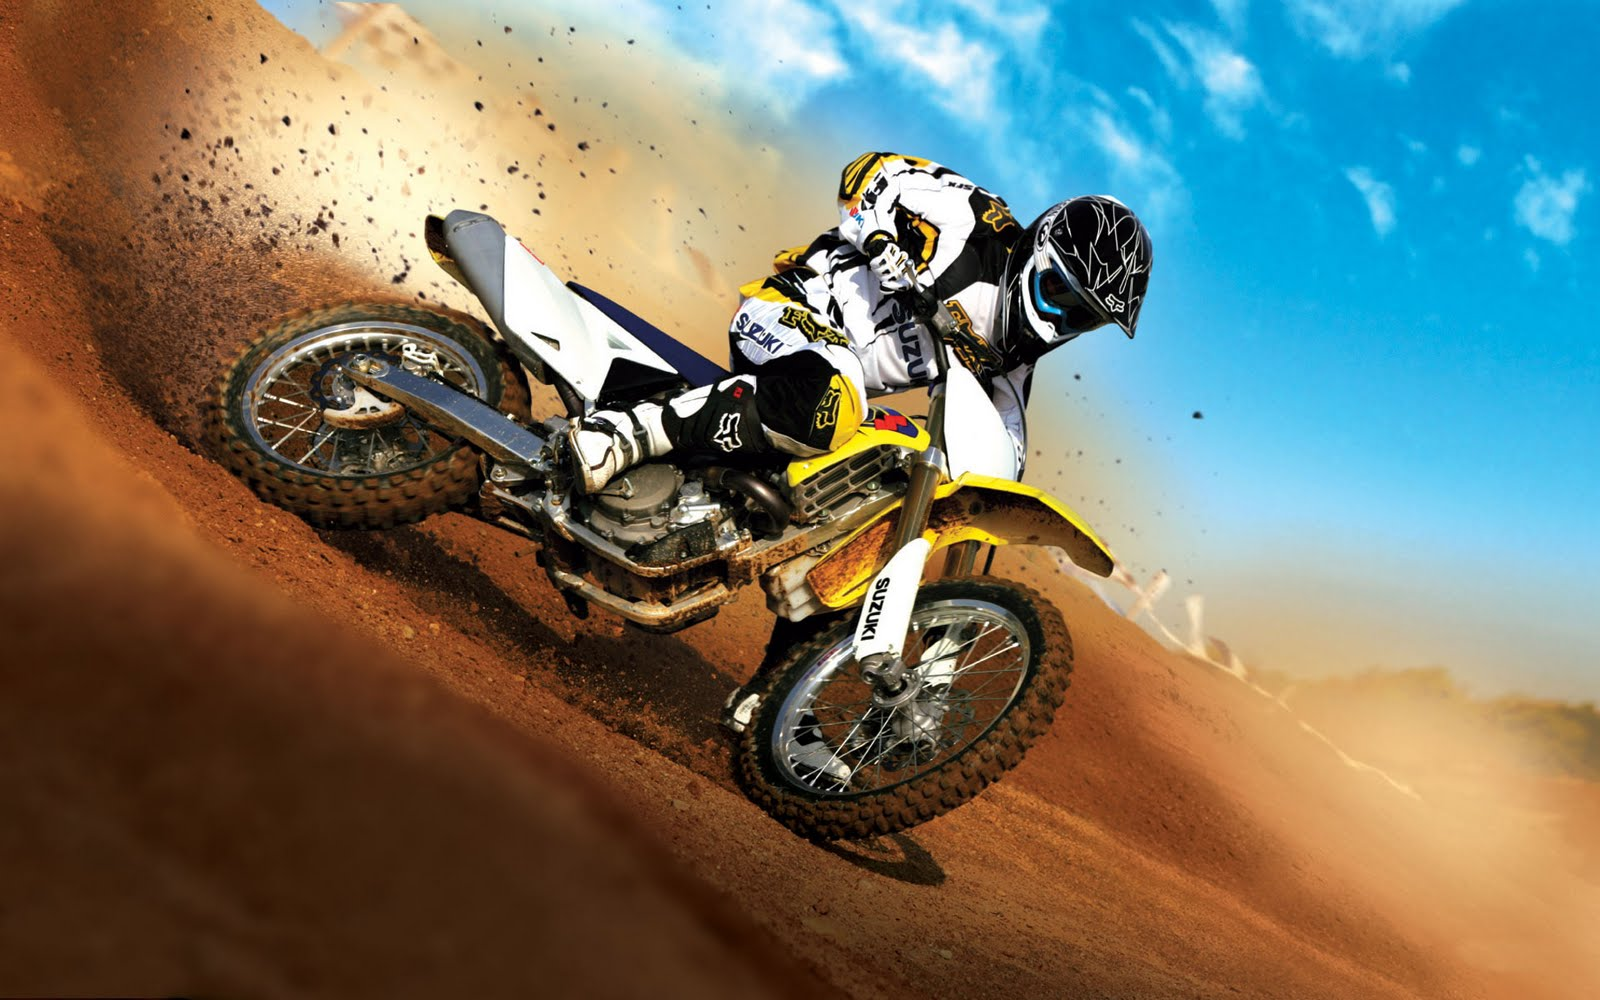 http://4.bp.blogspot.com/-7Z8S6LCve6k/TpaULFZnNkI/AAAAAAAAAic/zFV7U2CkRVQ/s1600/hd-wallpapers-widescreen-bike.jpg